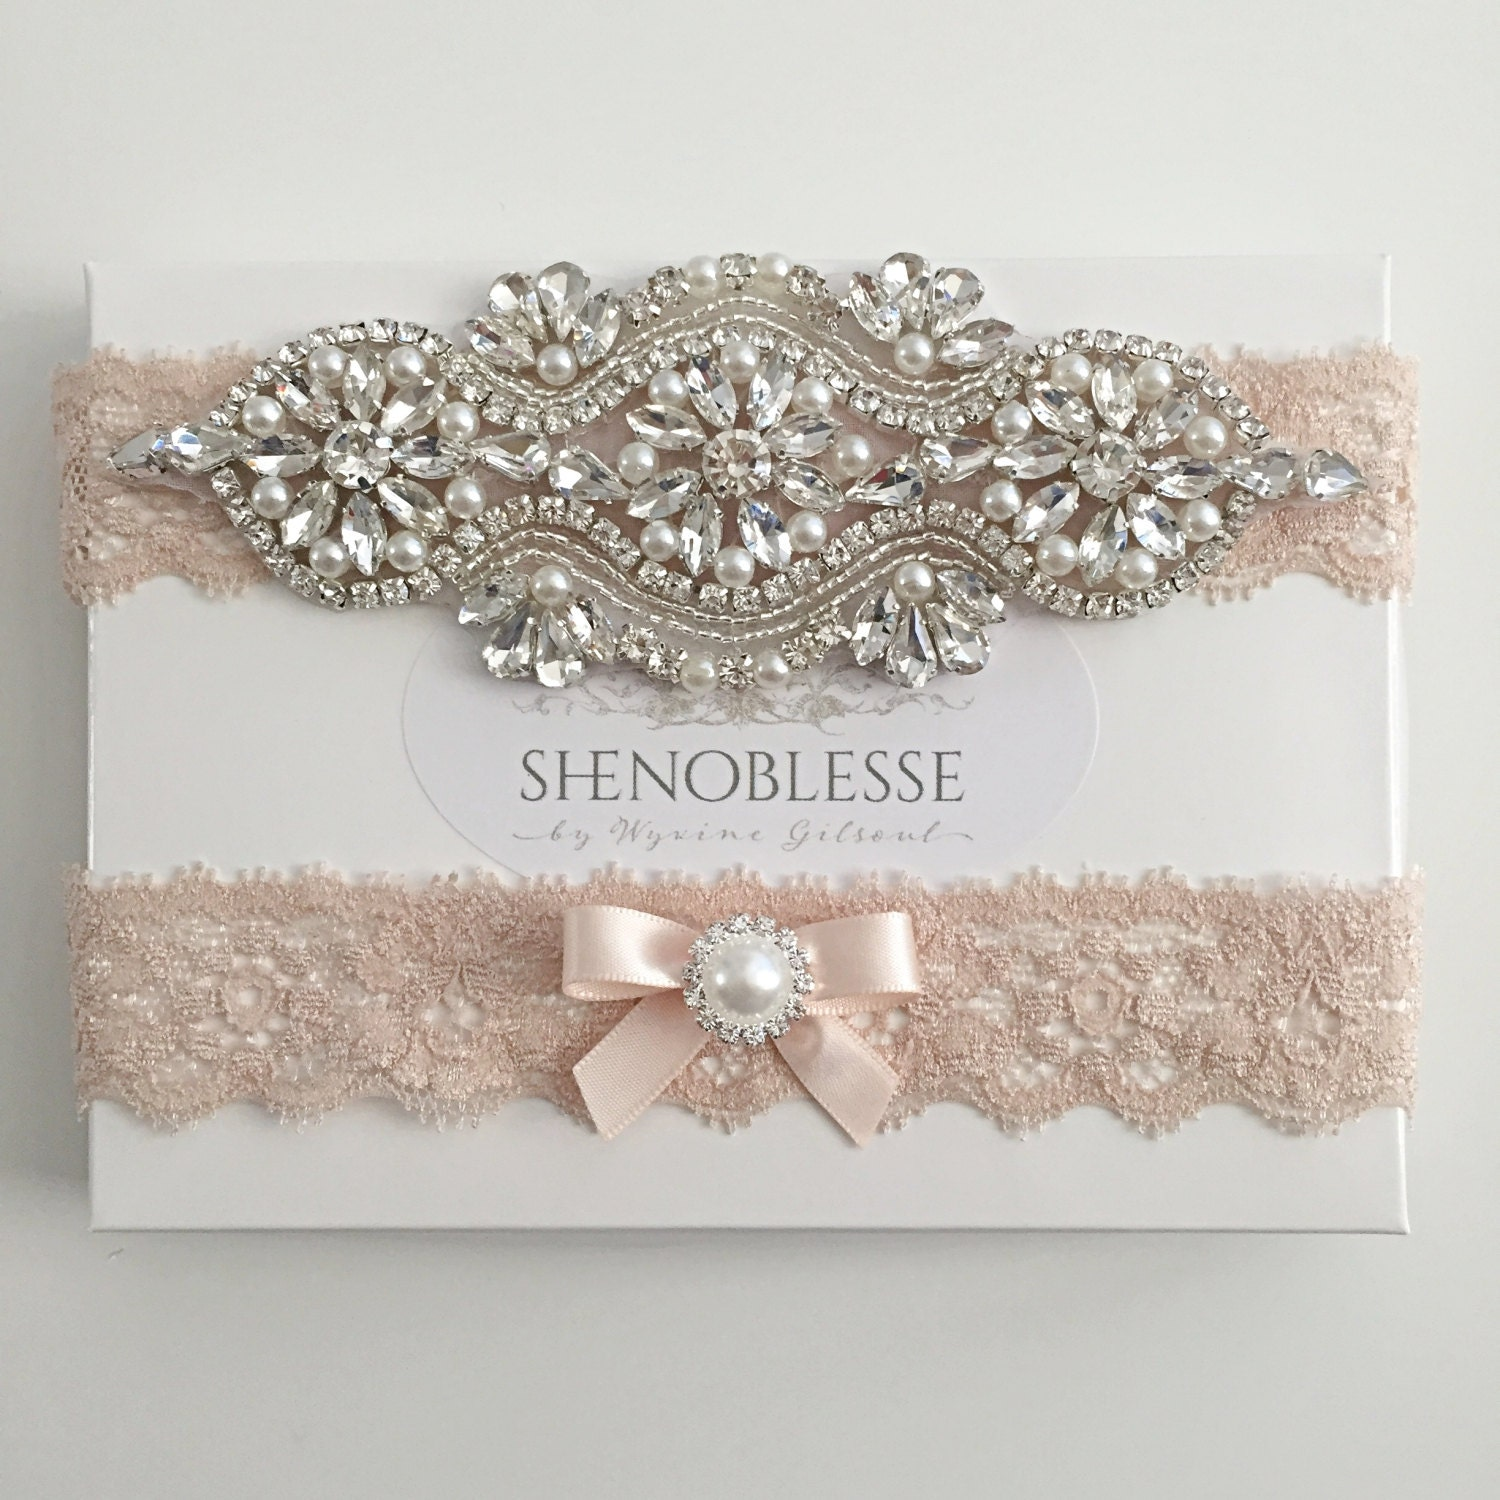 acbe70f23e3 30 Handmade Wedding Garters to Die For